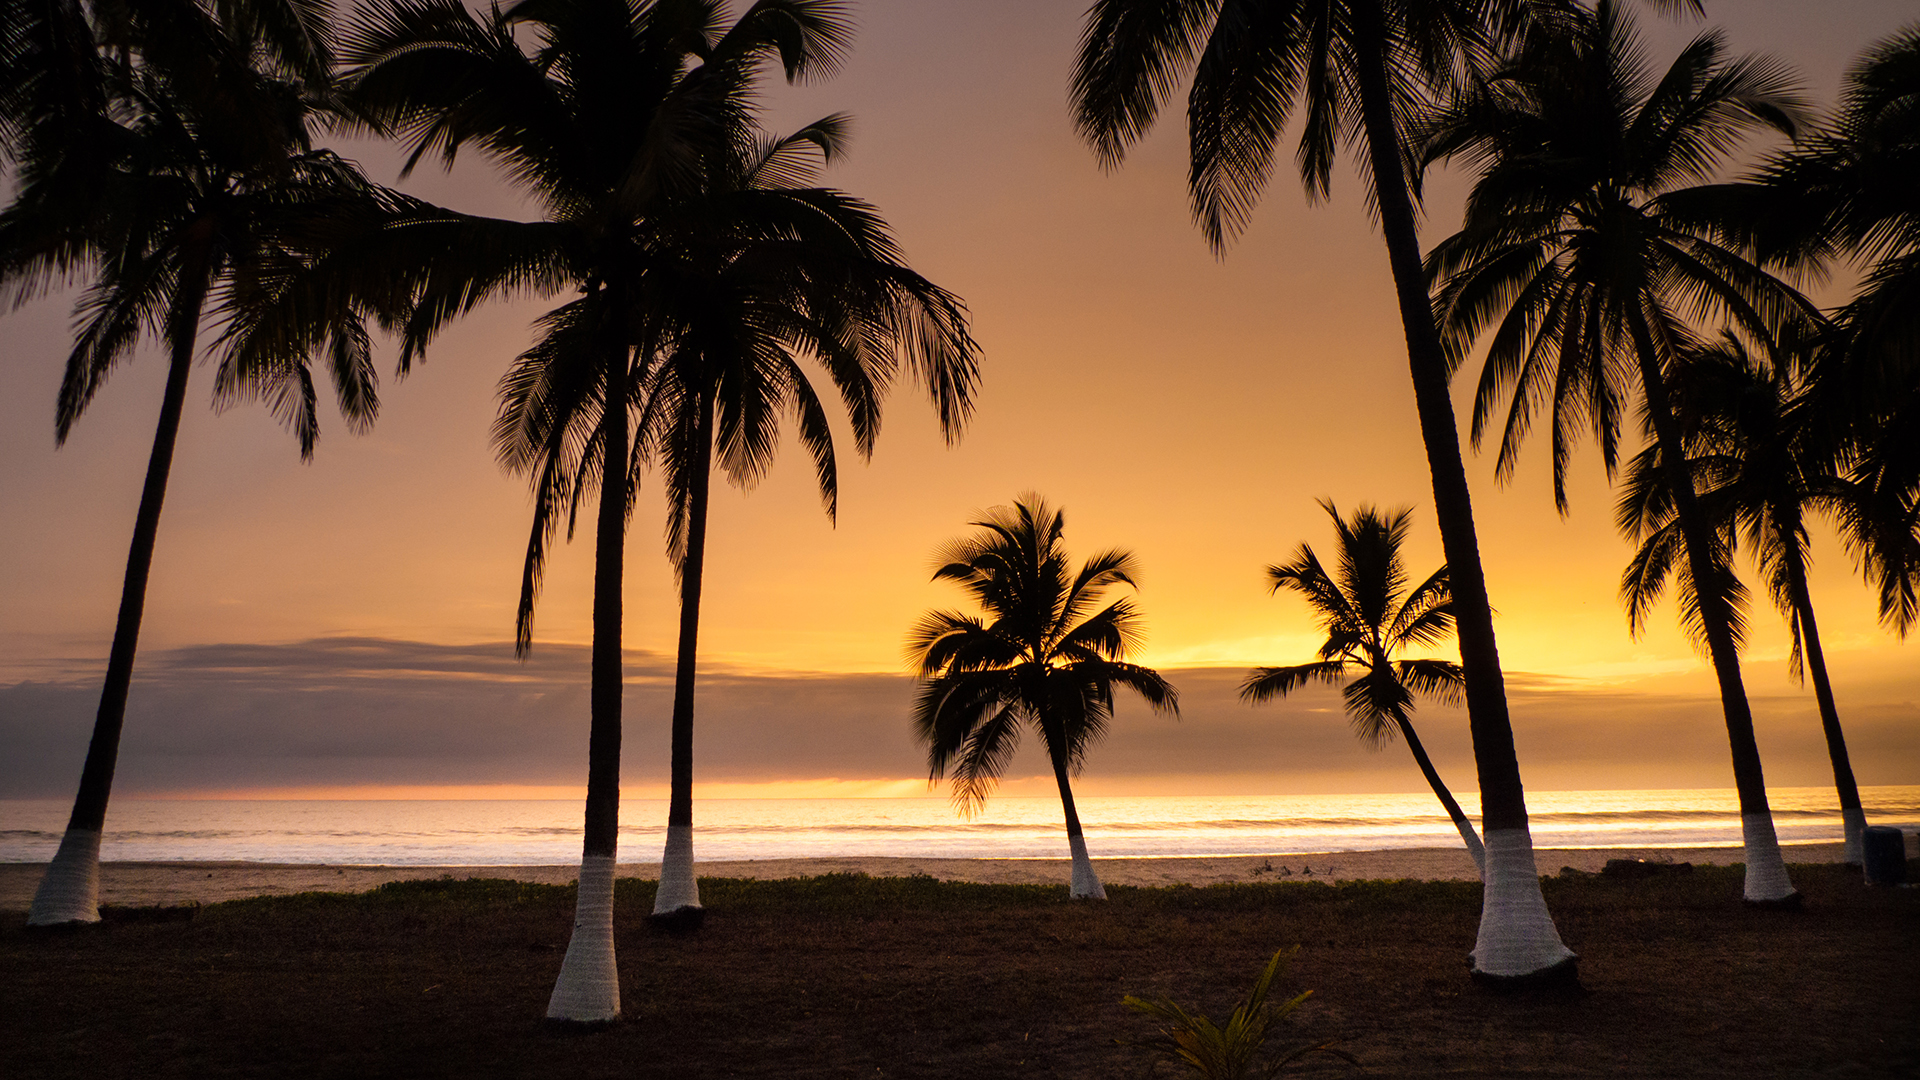 silhouetted palms at sunset in RIviera Nayarit